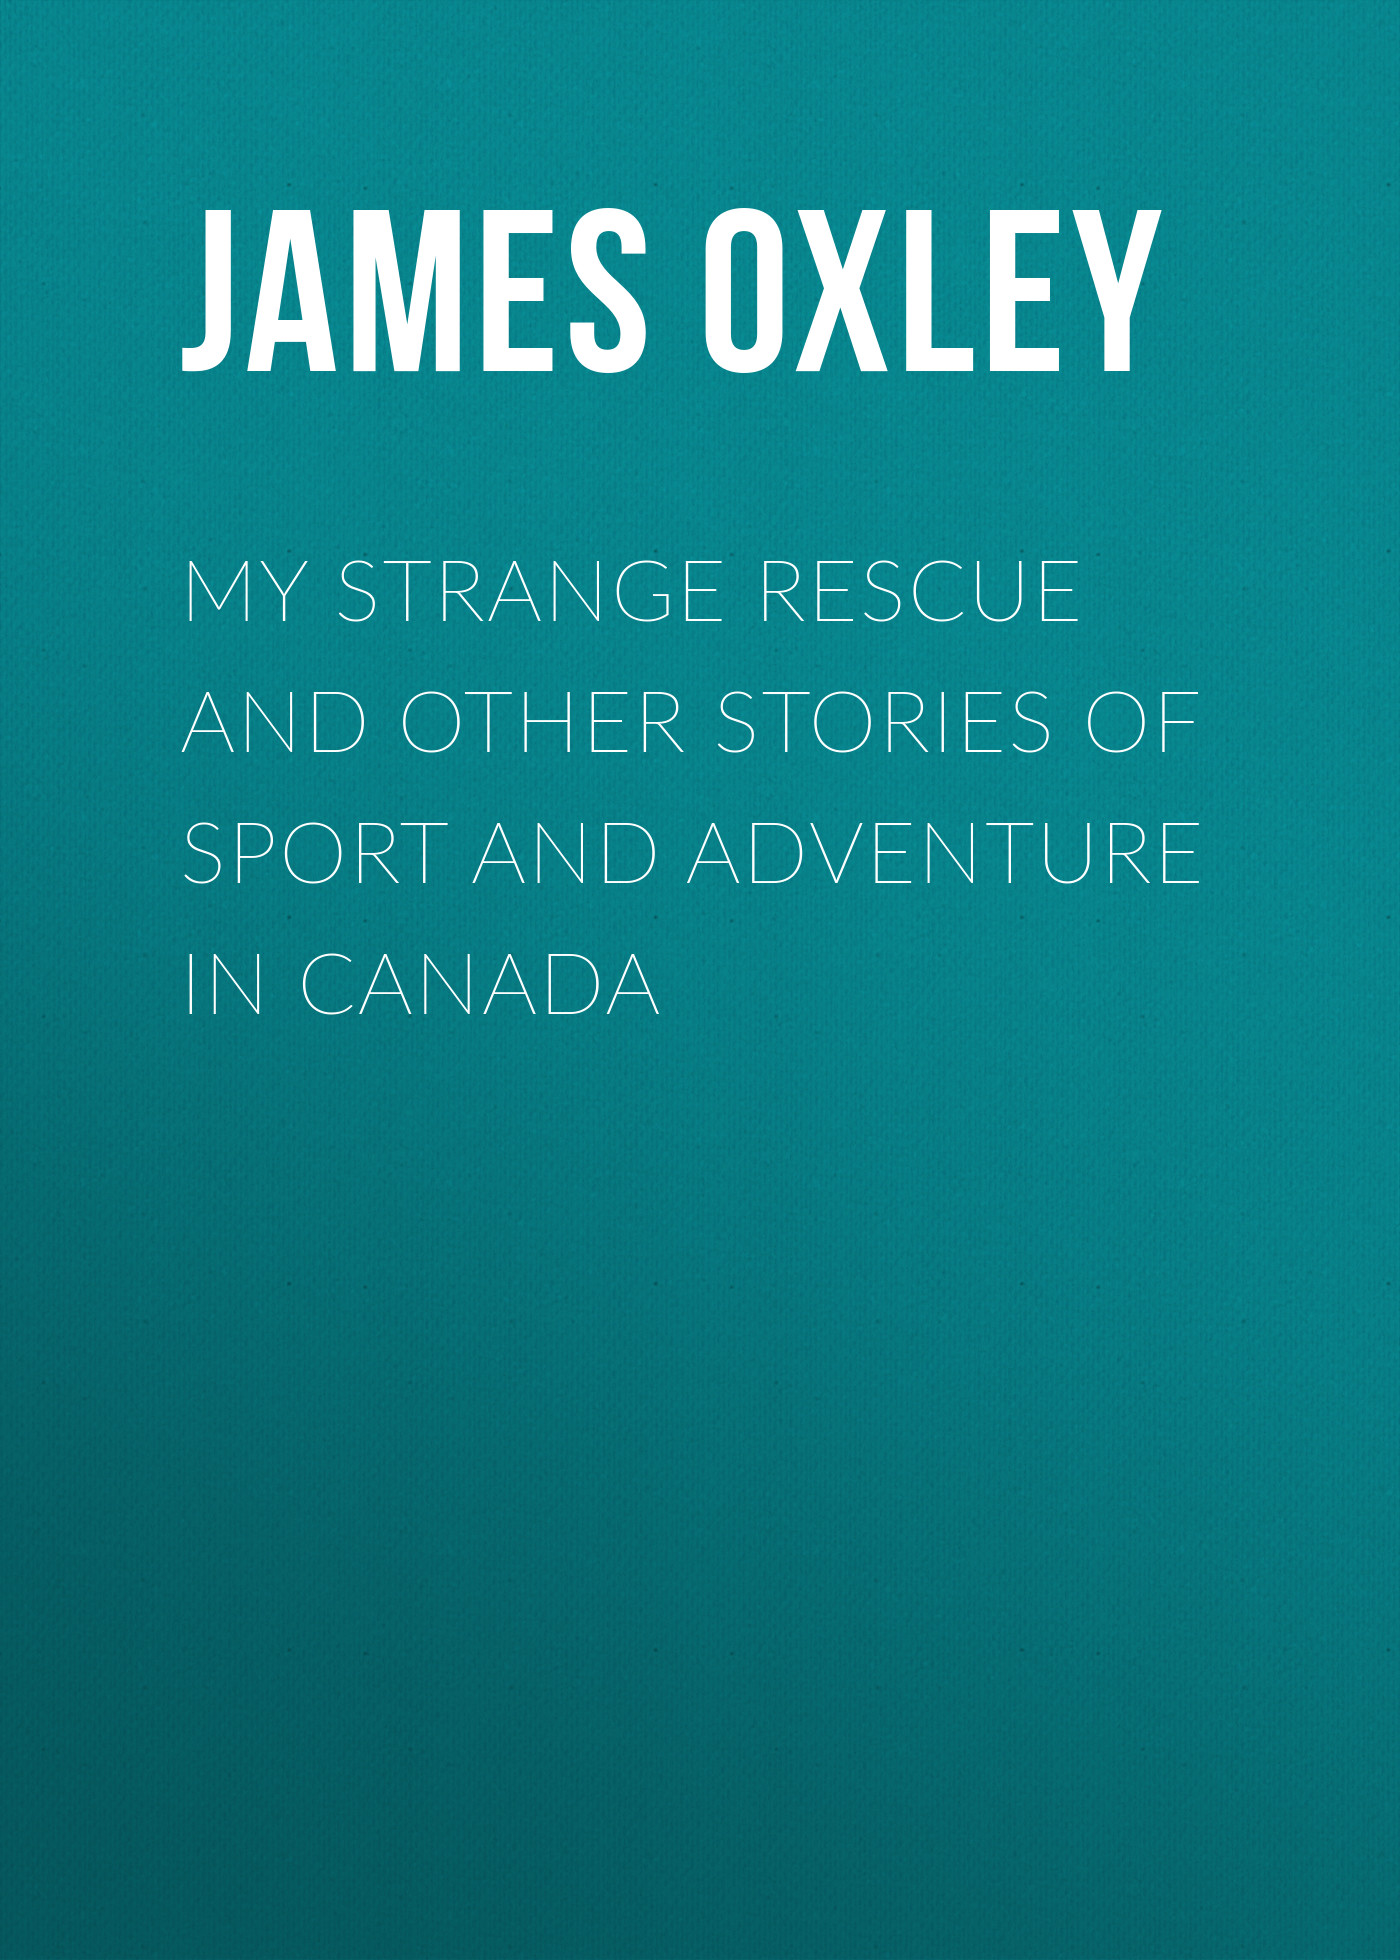 Oxley James Macdonald My Strange Rescue and other stories of Sport and Adventure in Canada oxley james macdonald my strange rescue and other stories of sport and adventure in canada